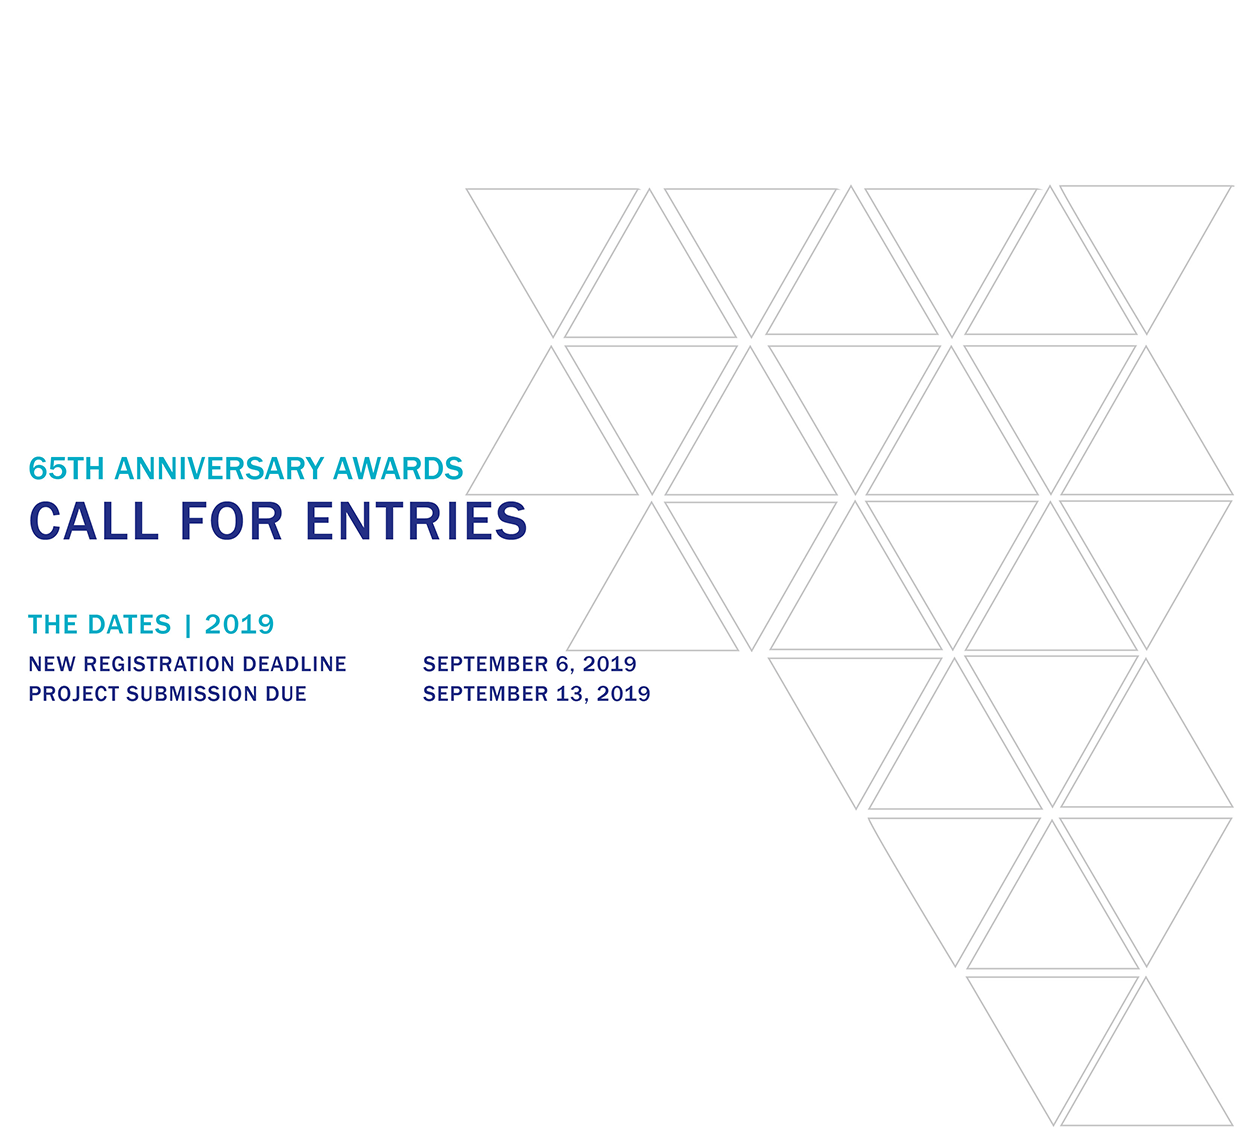 65th Anniversary Awards – Call for Entries